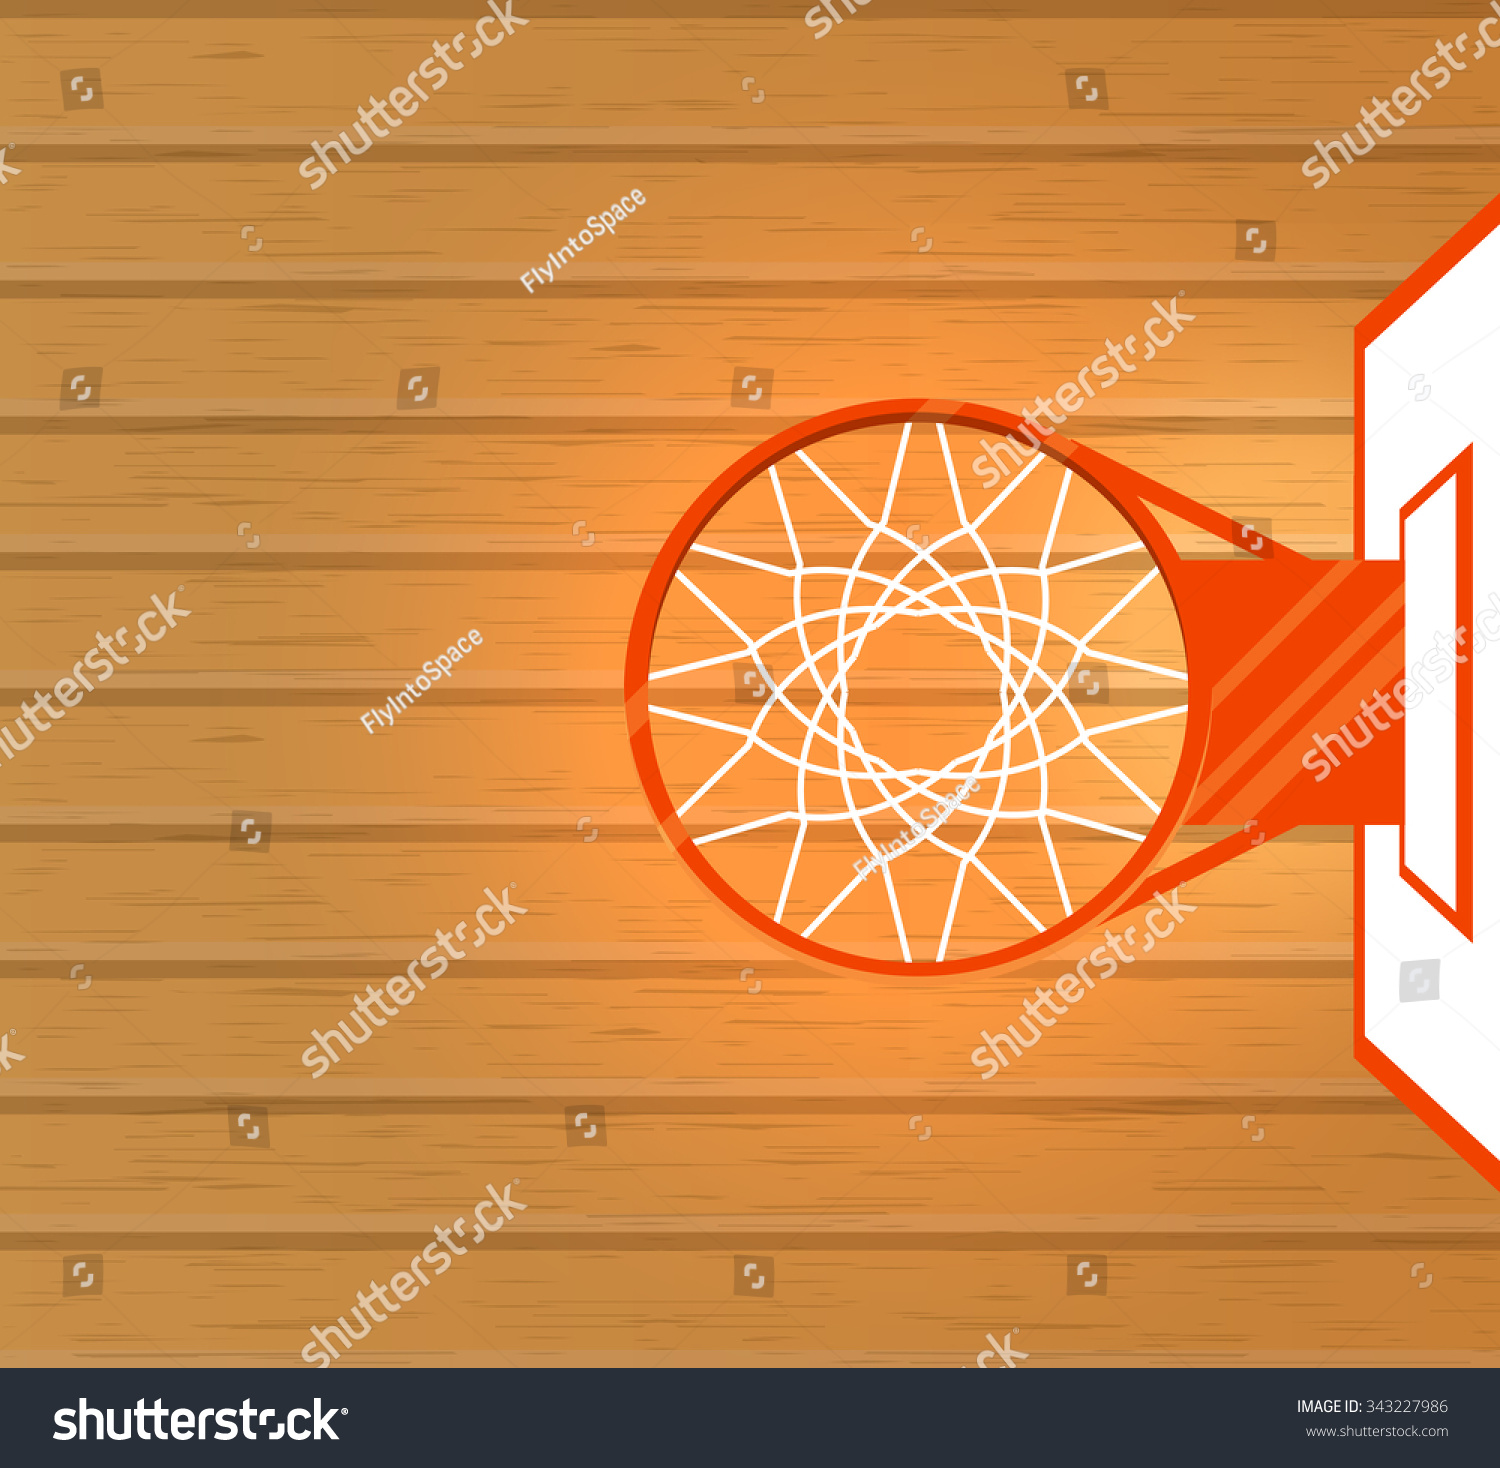 basketball vector march court floor and floors plan madness createmepink